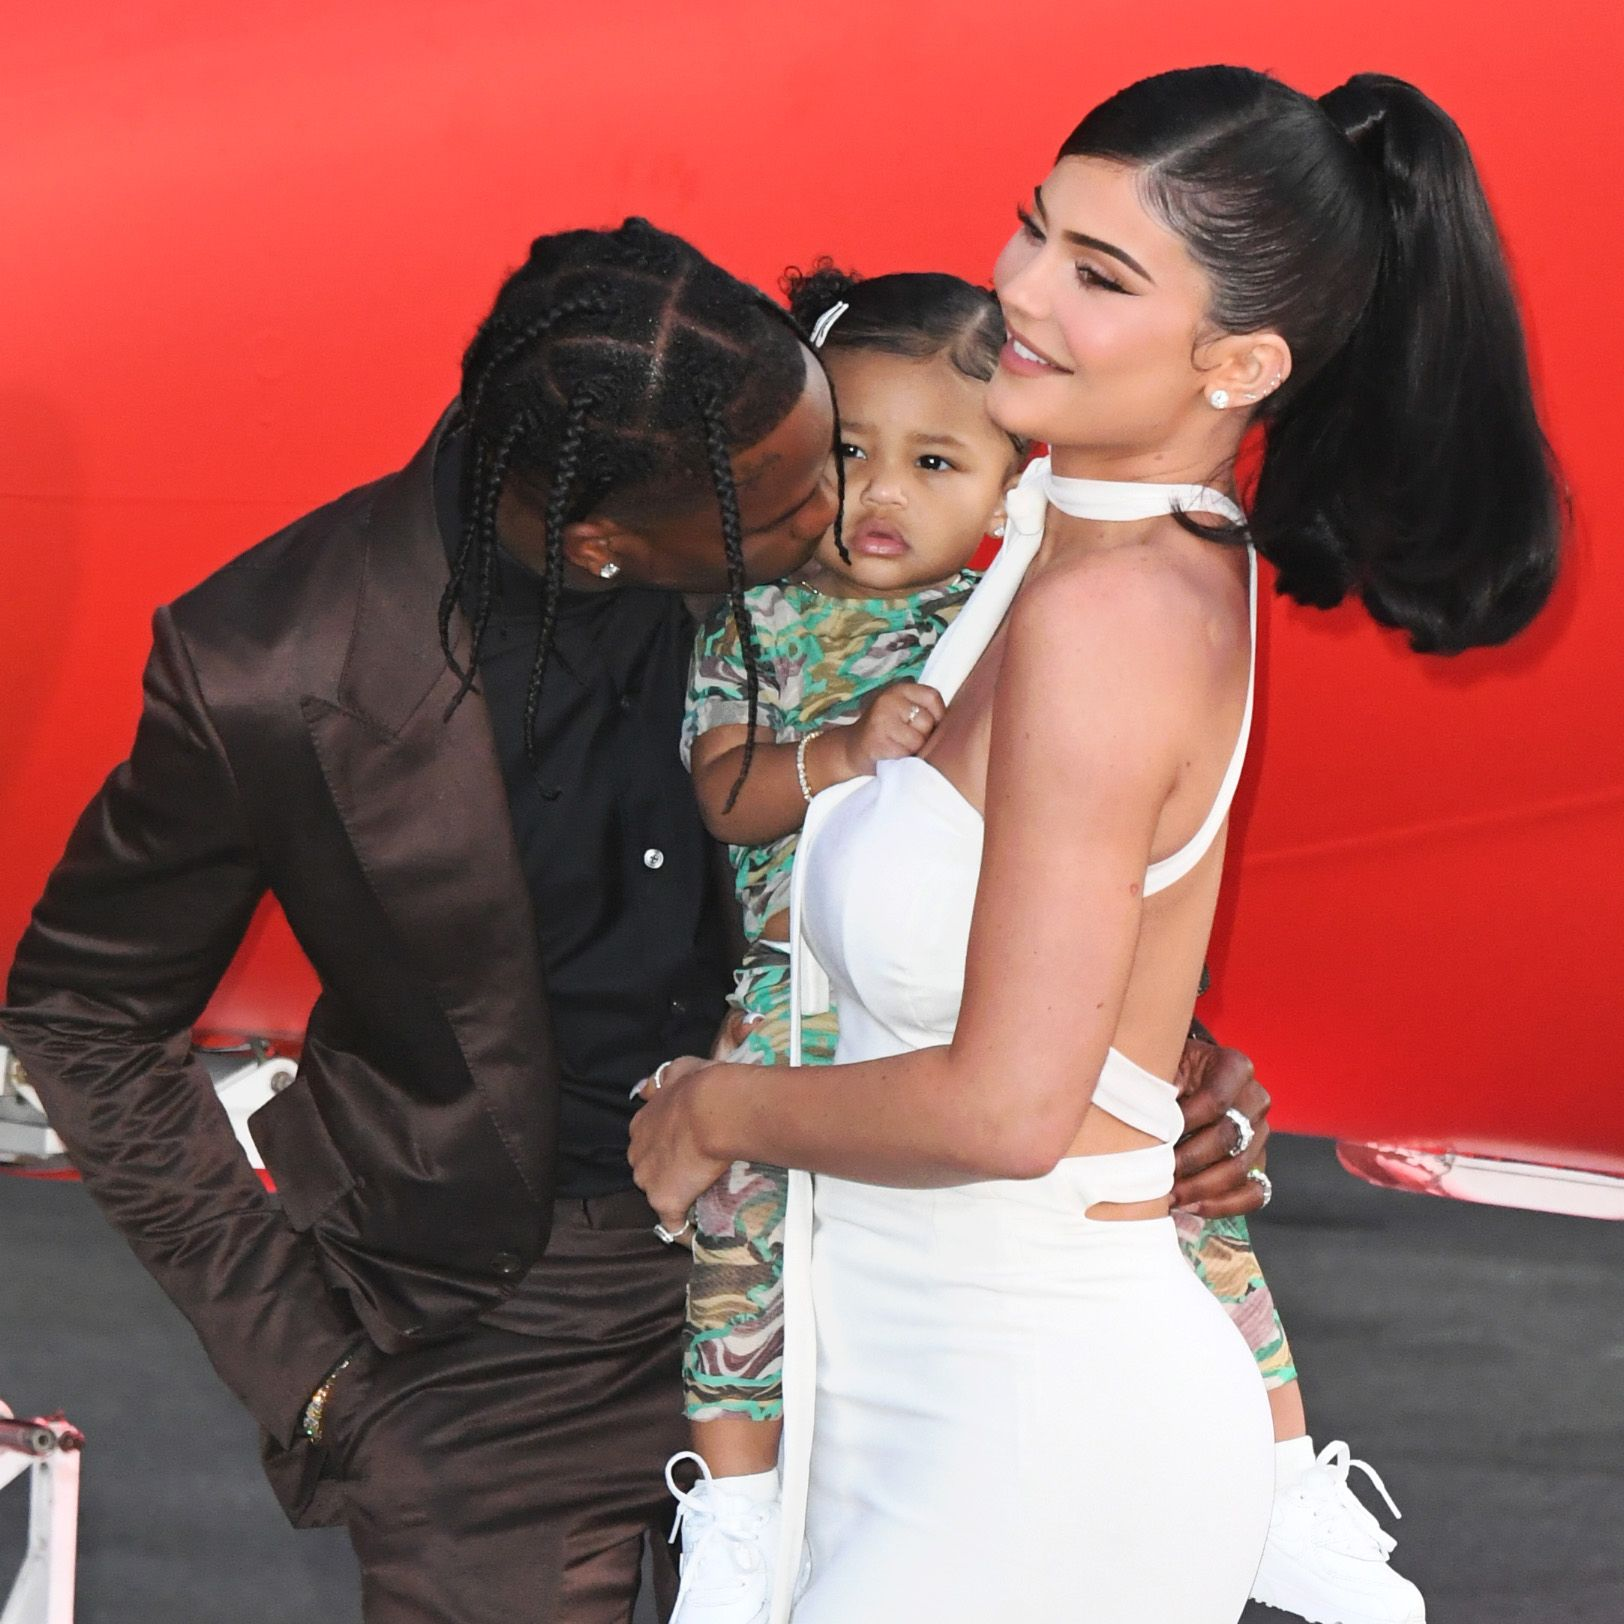 Kylie Jenner shares sweet picture with Travis Scott in the face of split rumours